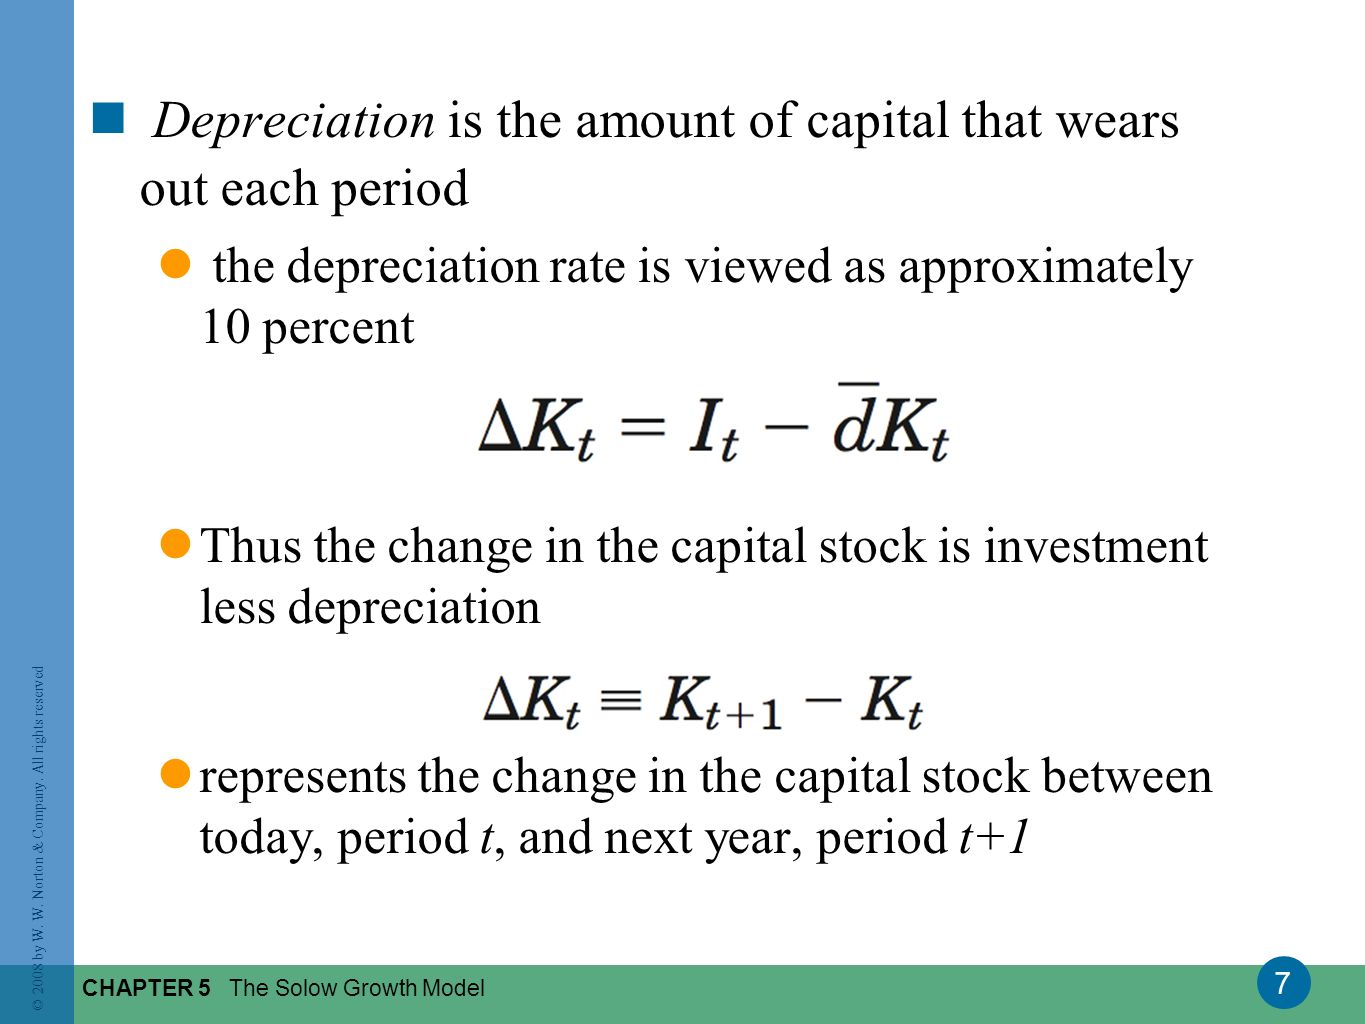 Depreciation is the amount of capital that wears out each period